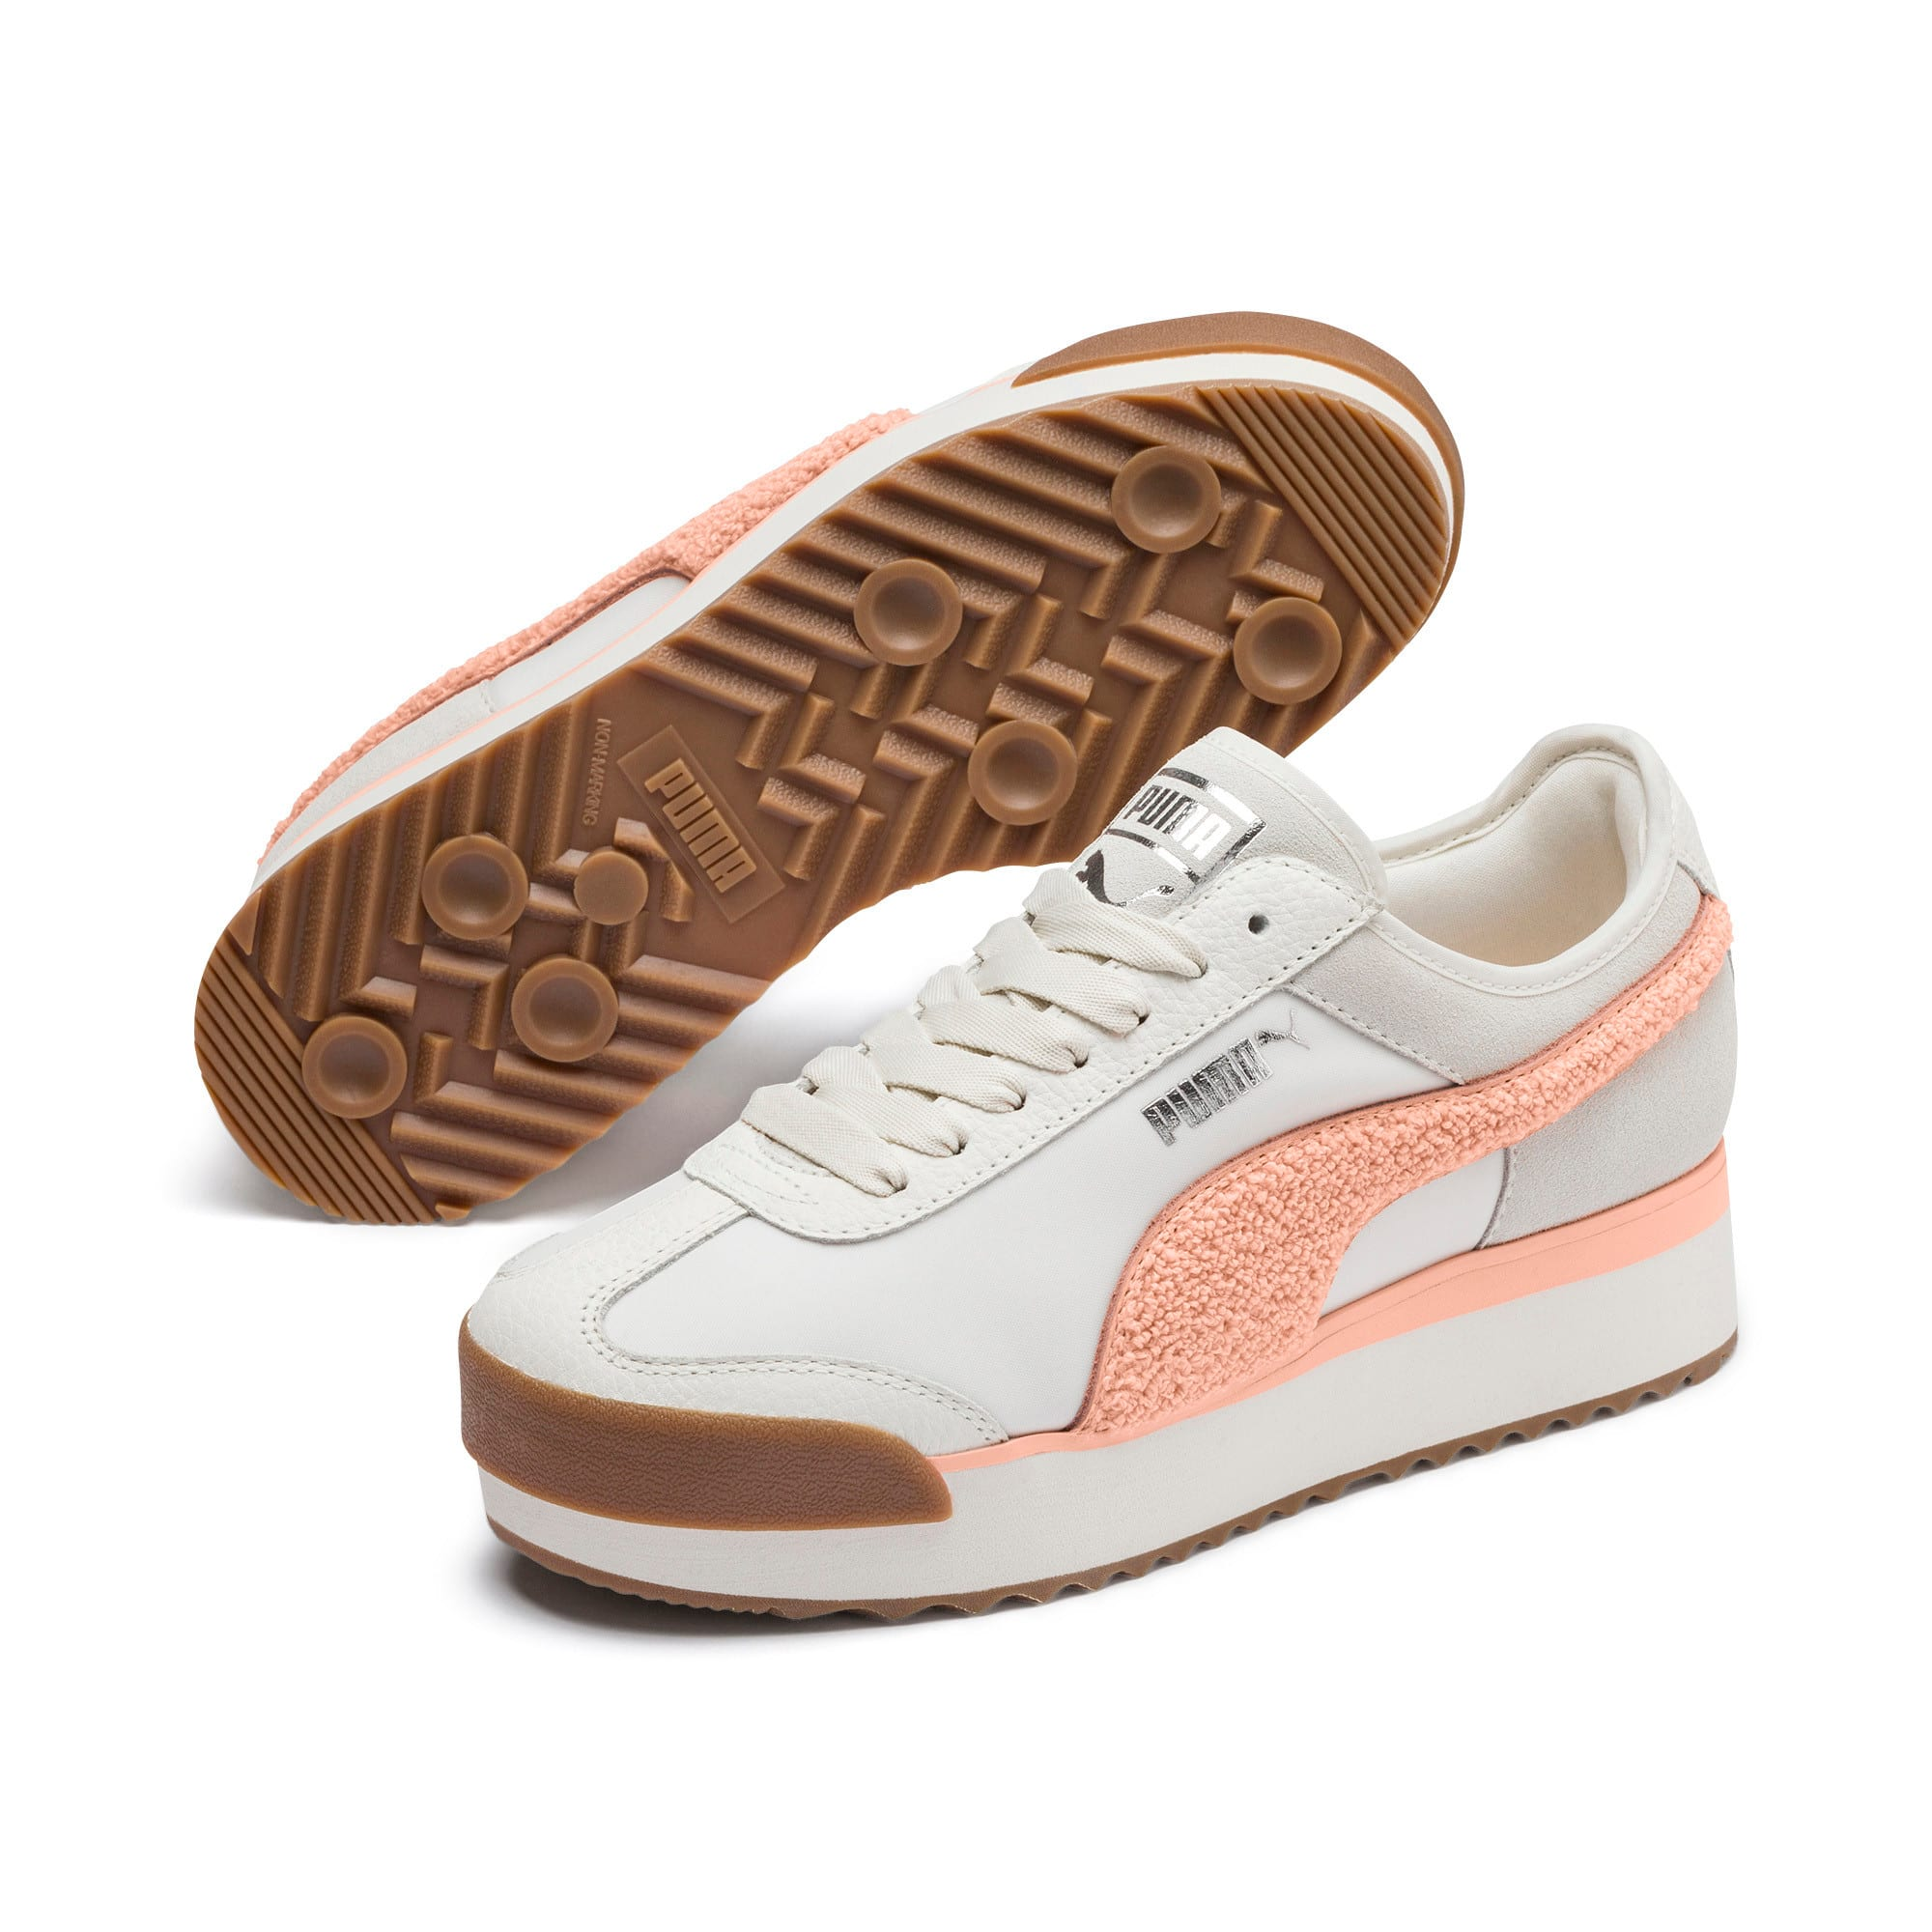 Thumbnail 3 of Roma Amor Heritage Women's Trainers, Marshmallow-Peach Parfait, medium